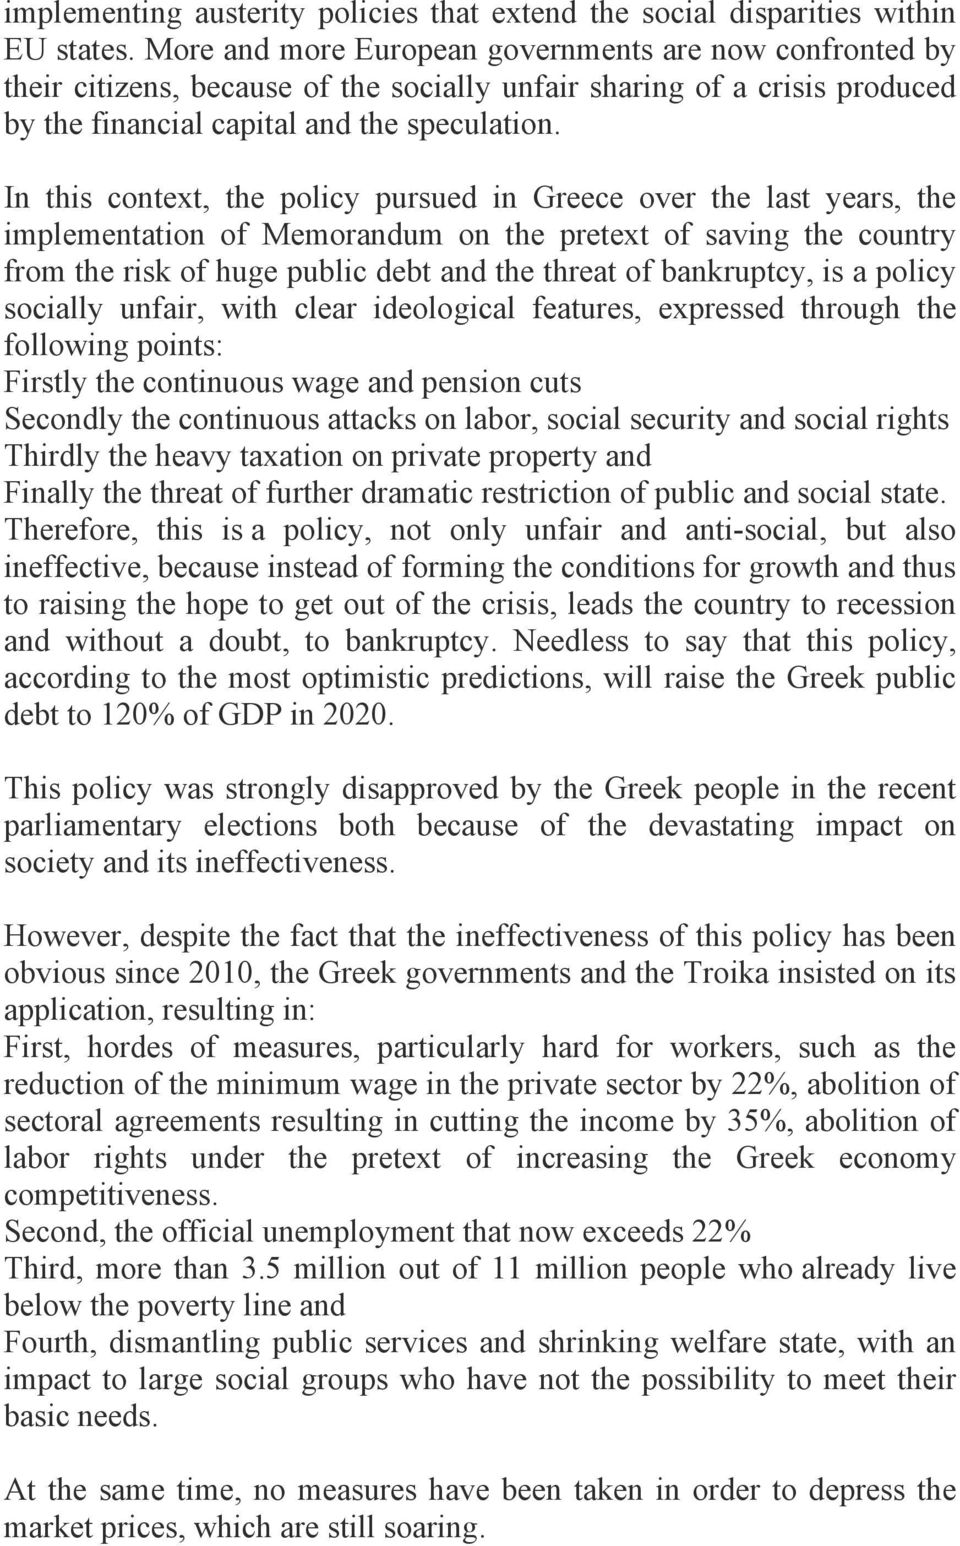 In this context, the policy pursued in Greece over the last years, the implementation of Memorandum on the pretext of saving the country from the risk of huge public debt and the threat of